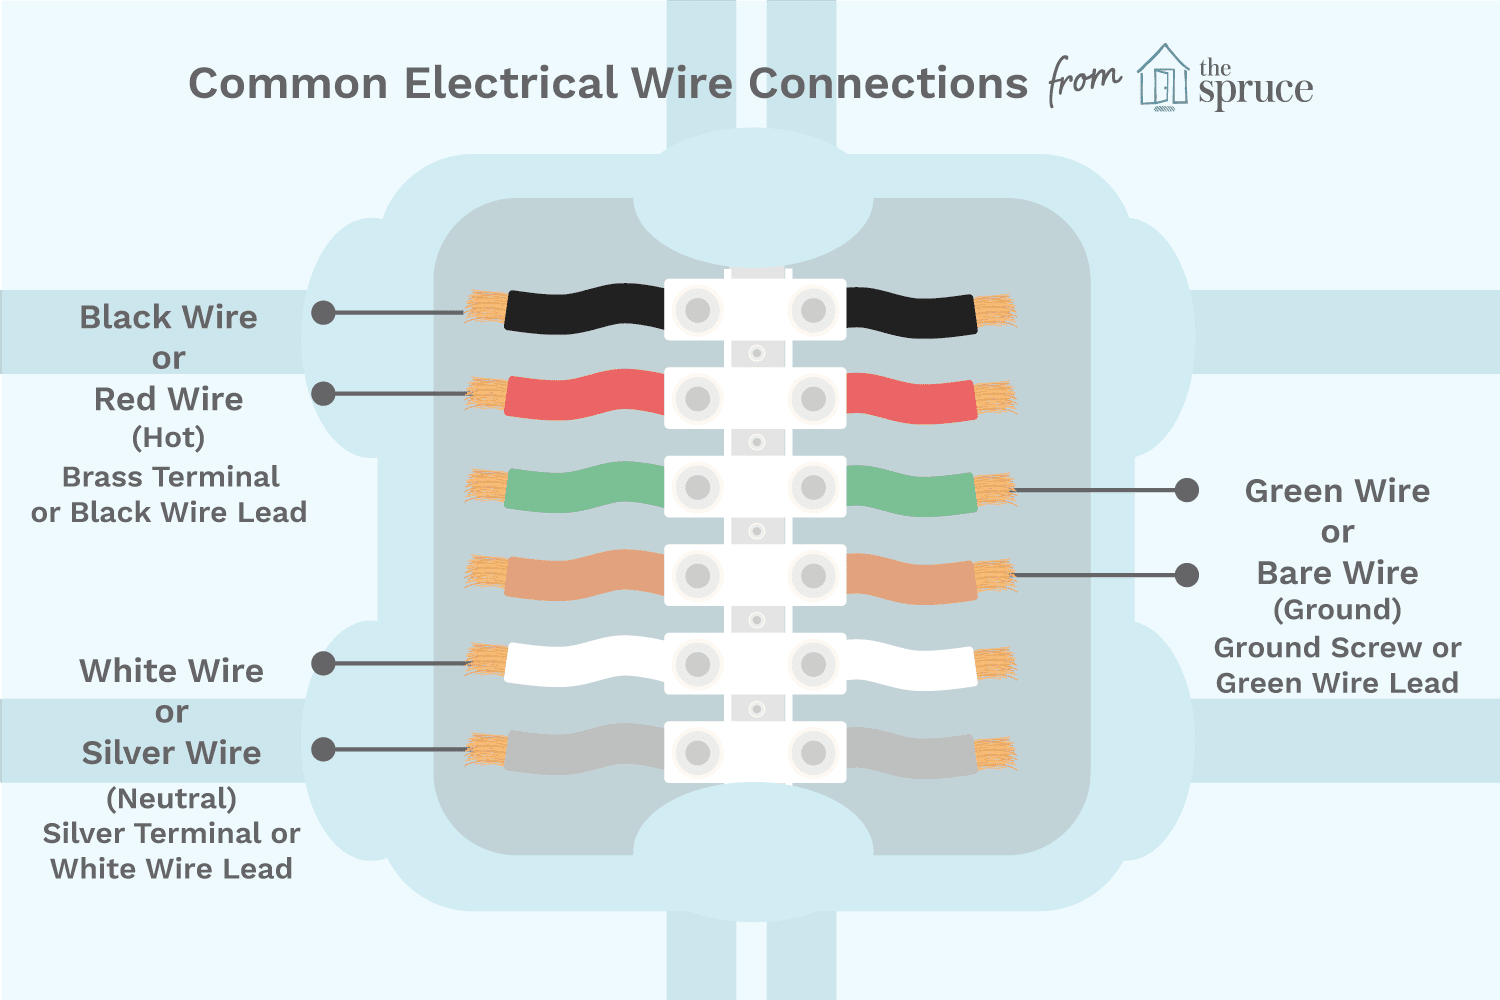 Color Coding Of Electrical Wires And Terminal Screws Gfci Wiring Diagram With The Switch Separate Electric